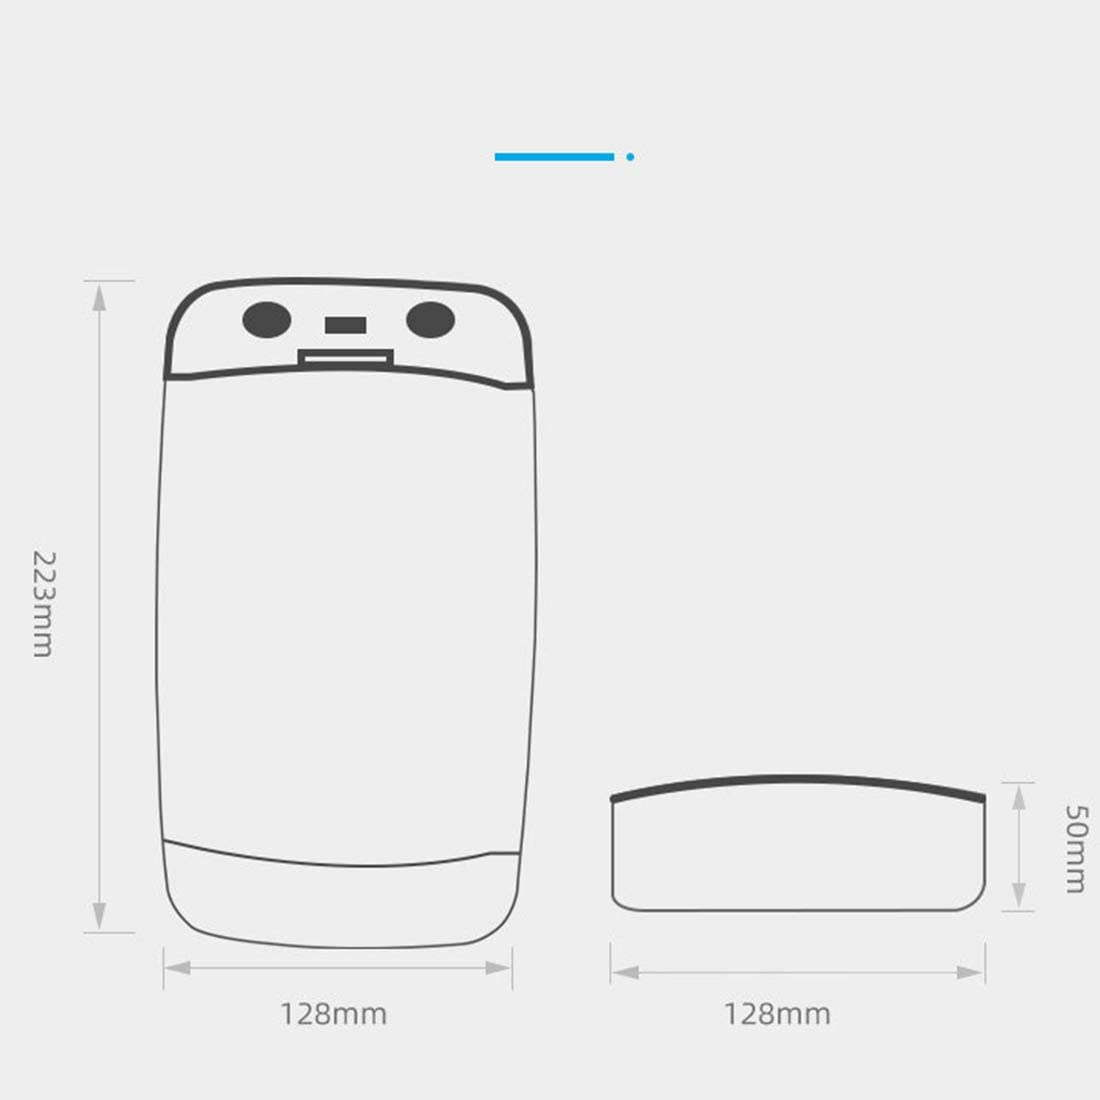 DRAKE18 Smartphone UV Sterilizer Mobile Phone Disinfection Box With USB Charger Portable Smart Voice Multi-Function For Phones Glasses Jewelry Key,White